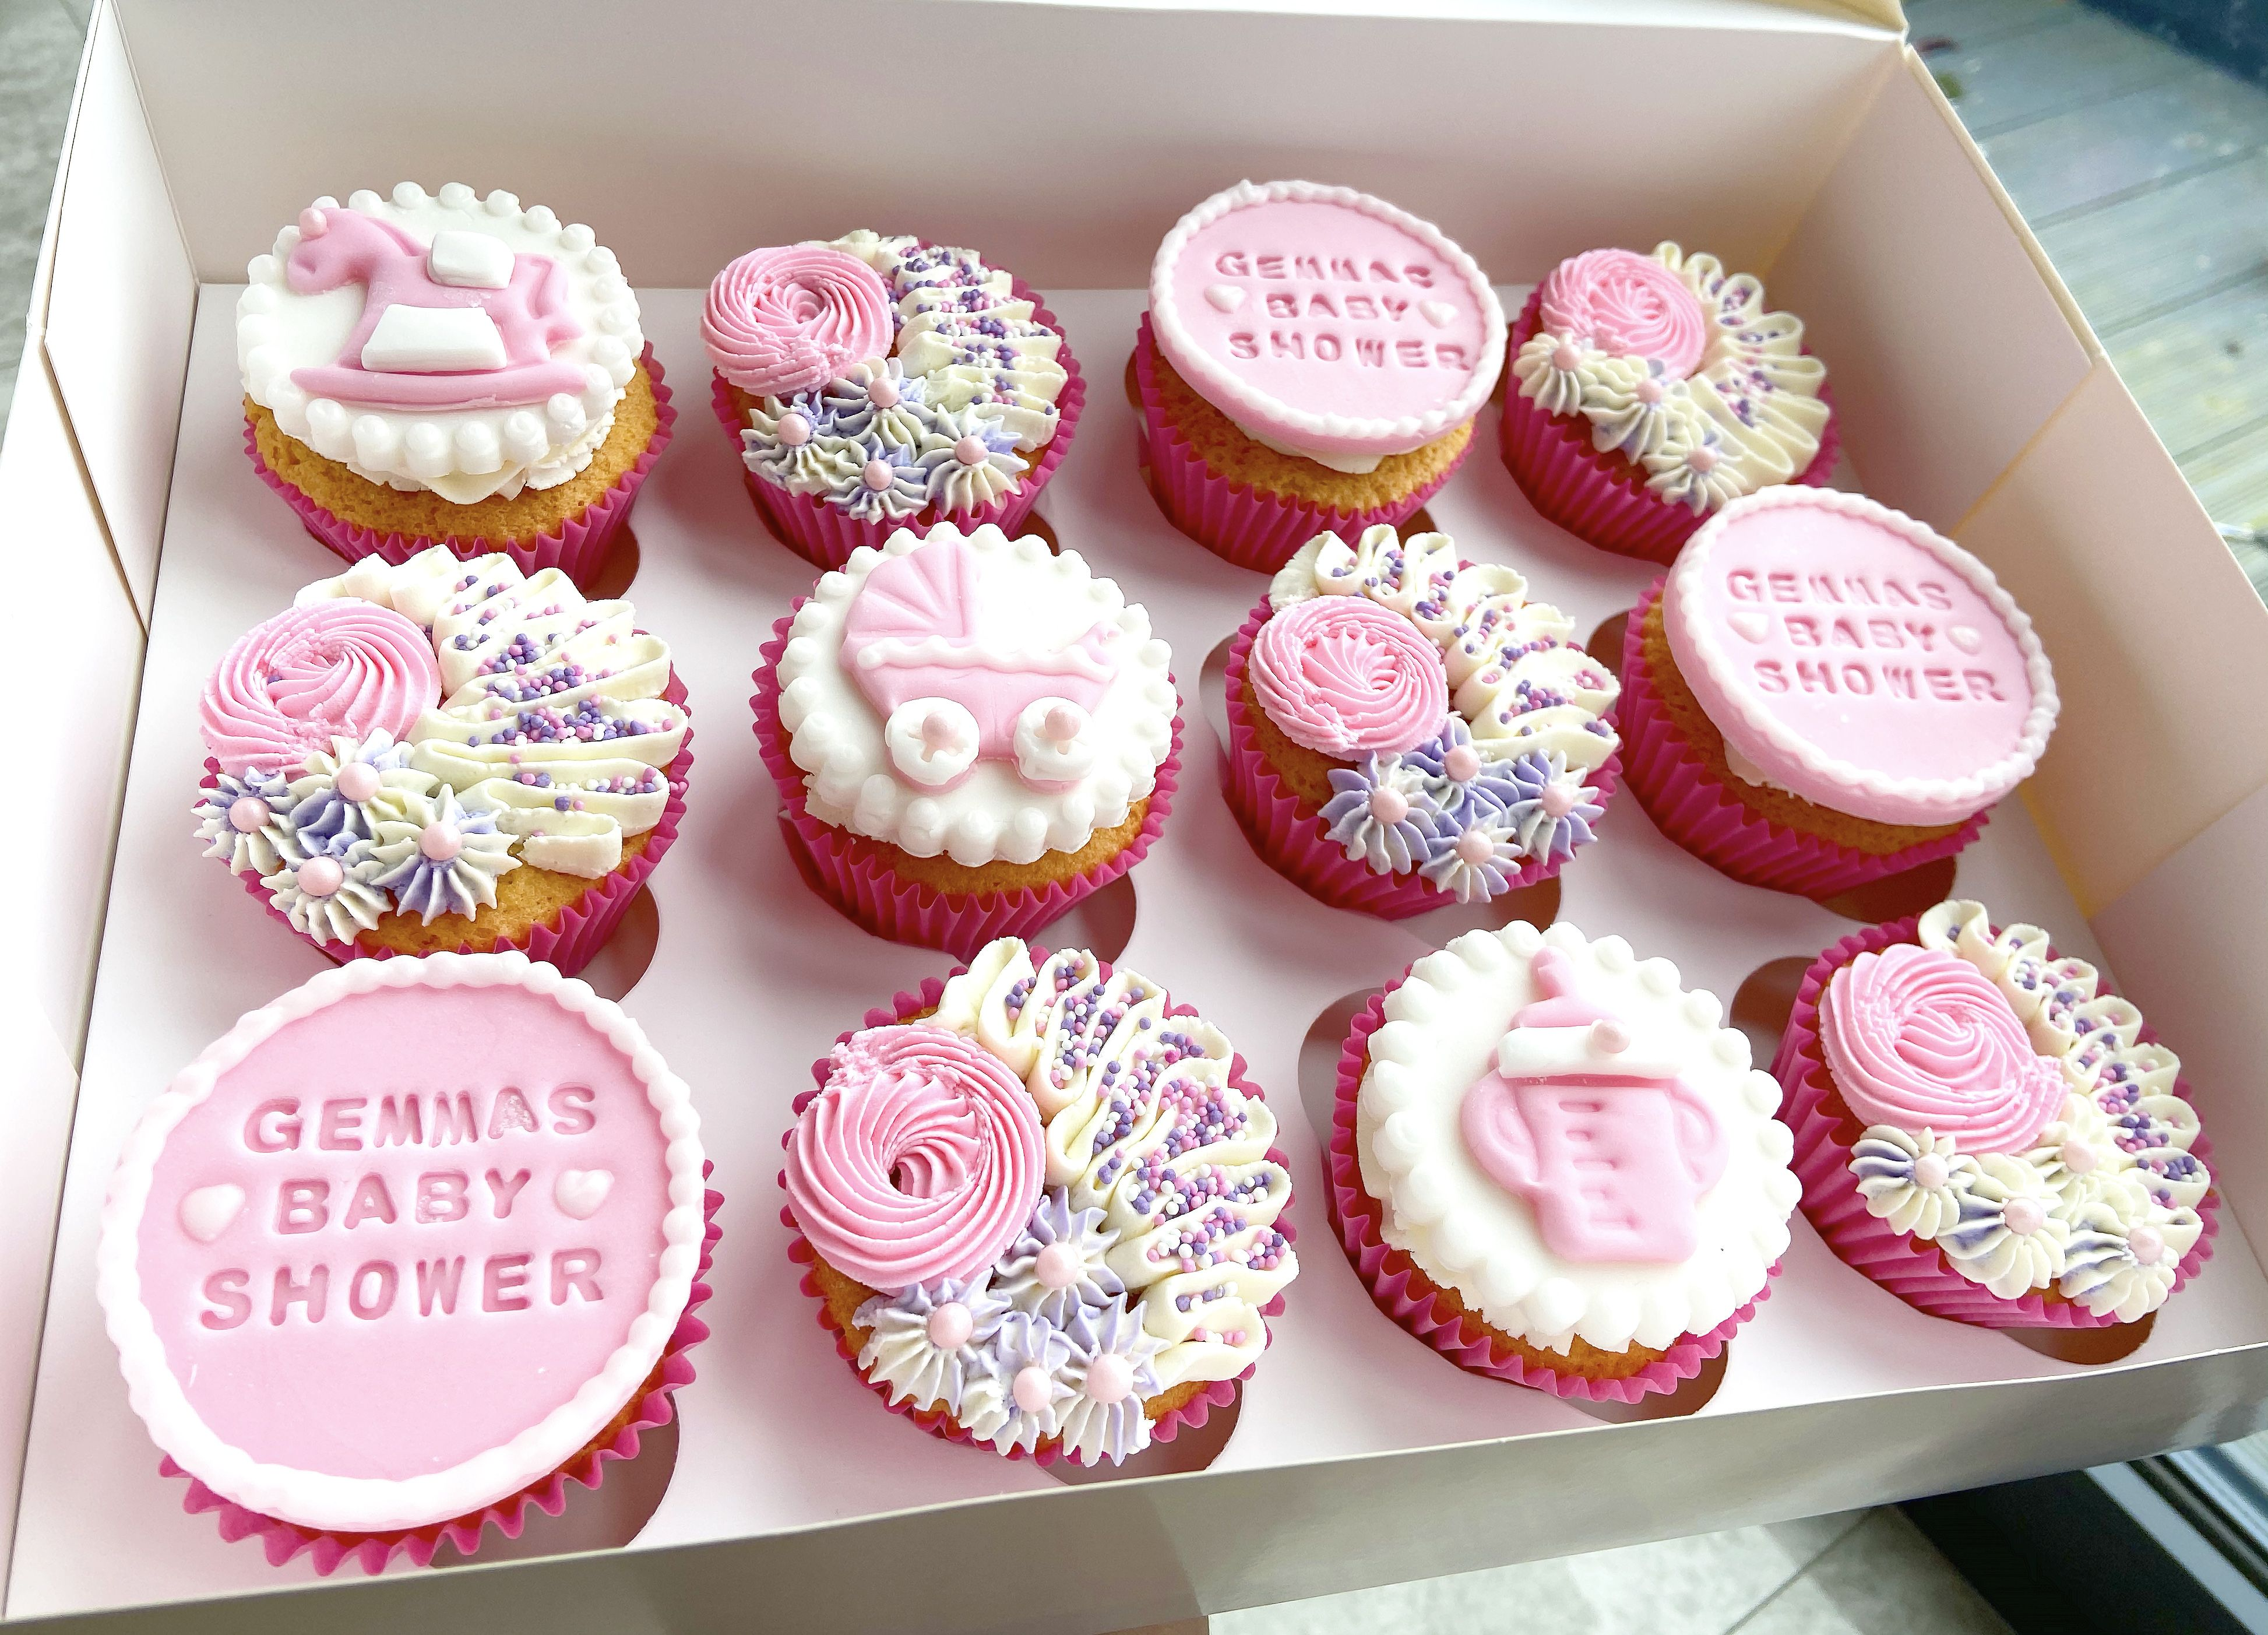 Baby Girl Baby Shower Cupcakes In Pink Purple And White Cerise Pink Cases Buttercream S Baby Shower Cupcakes For Girls Baby Shower Purple Baby Shower Cupcakes